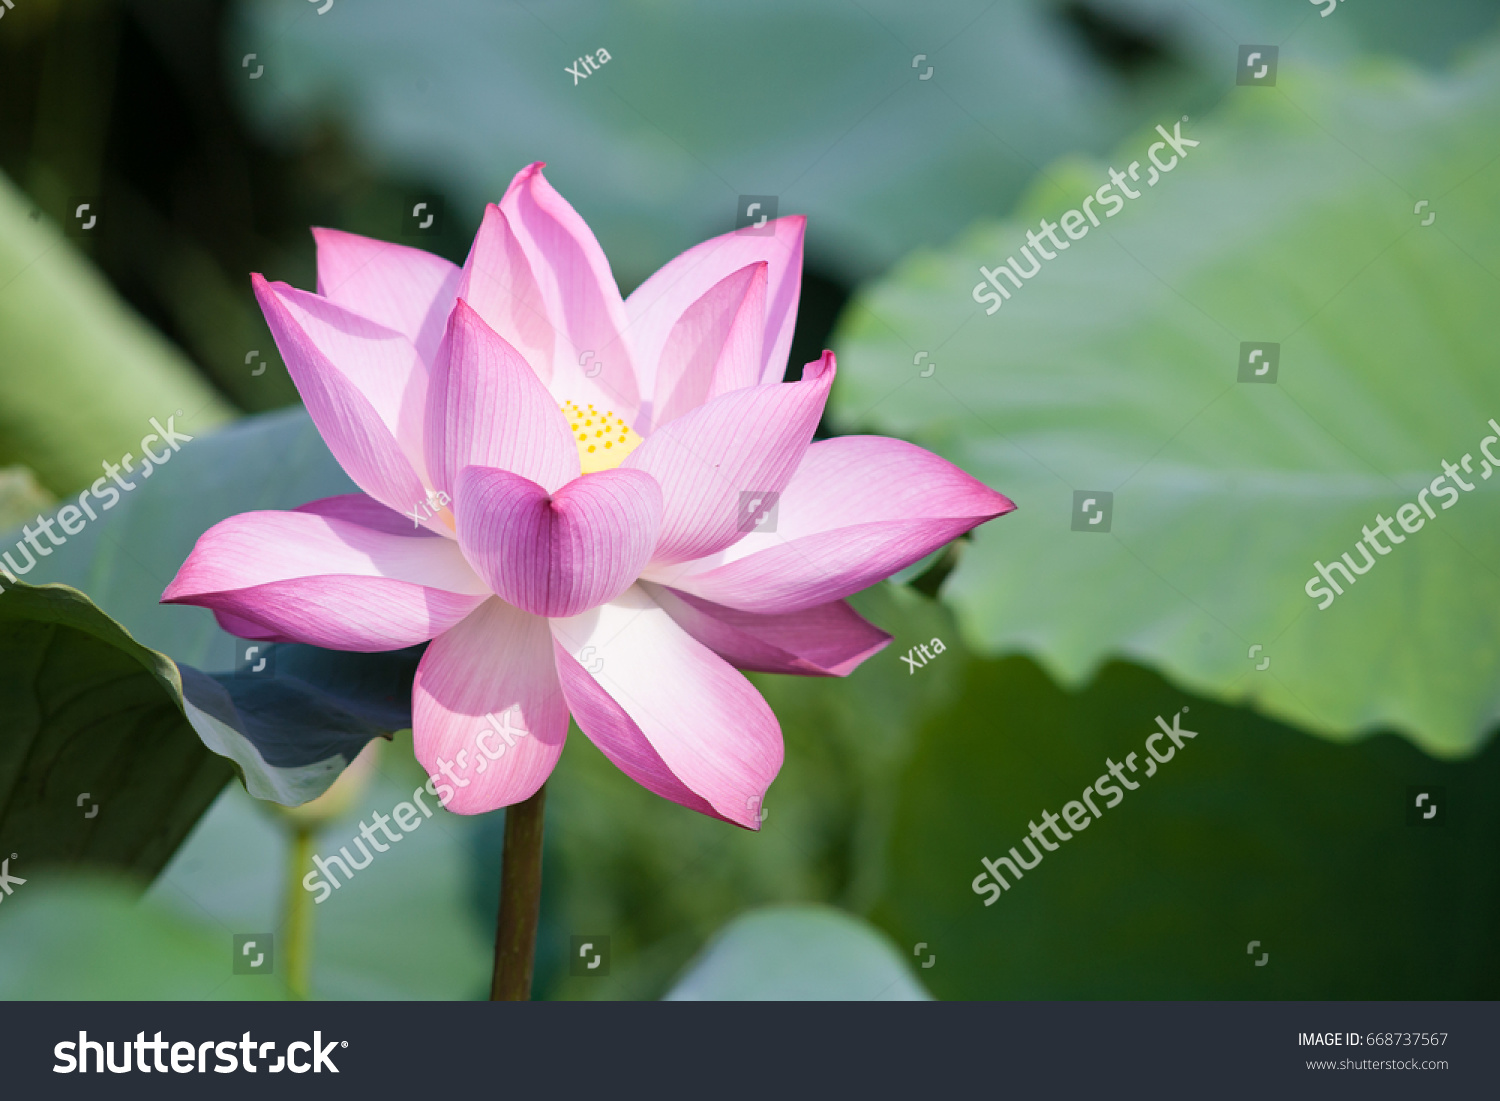 Beautiful lotus flower background lotus flower stock photo 668737567 beautiful lotus flower background lotus flower is the symbol of the buddha natural background izmirmasajfo Images